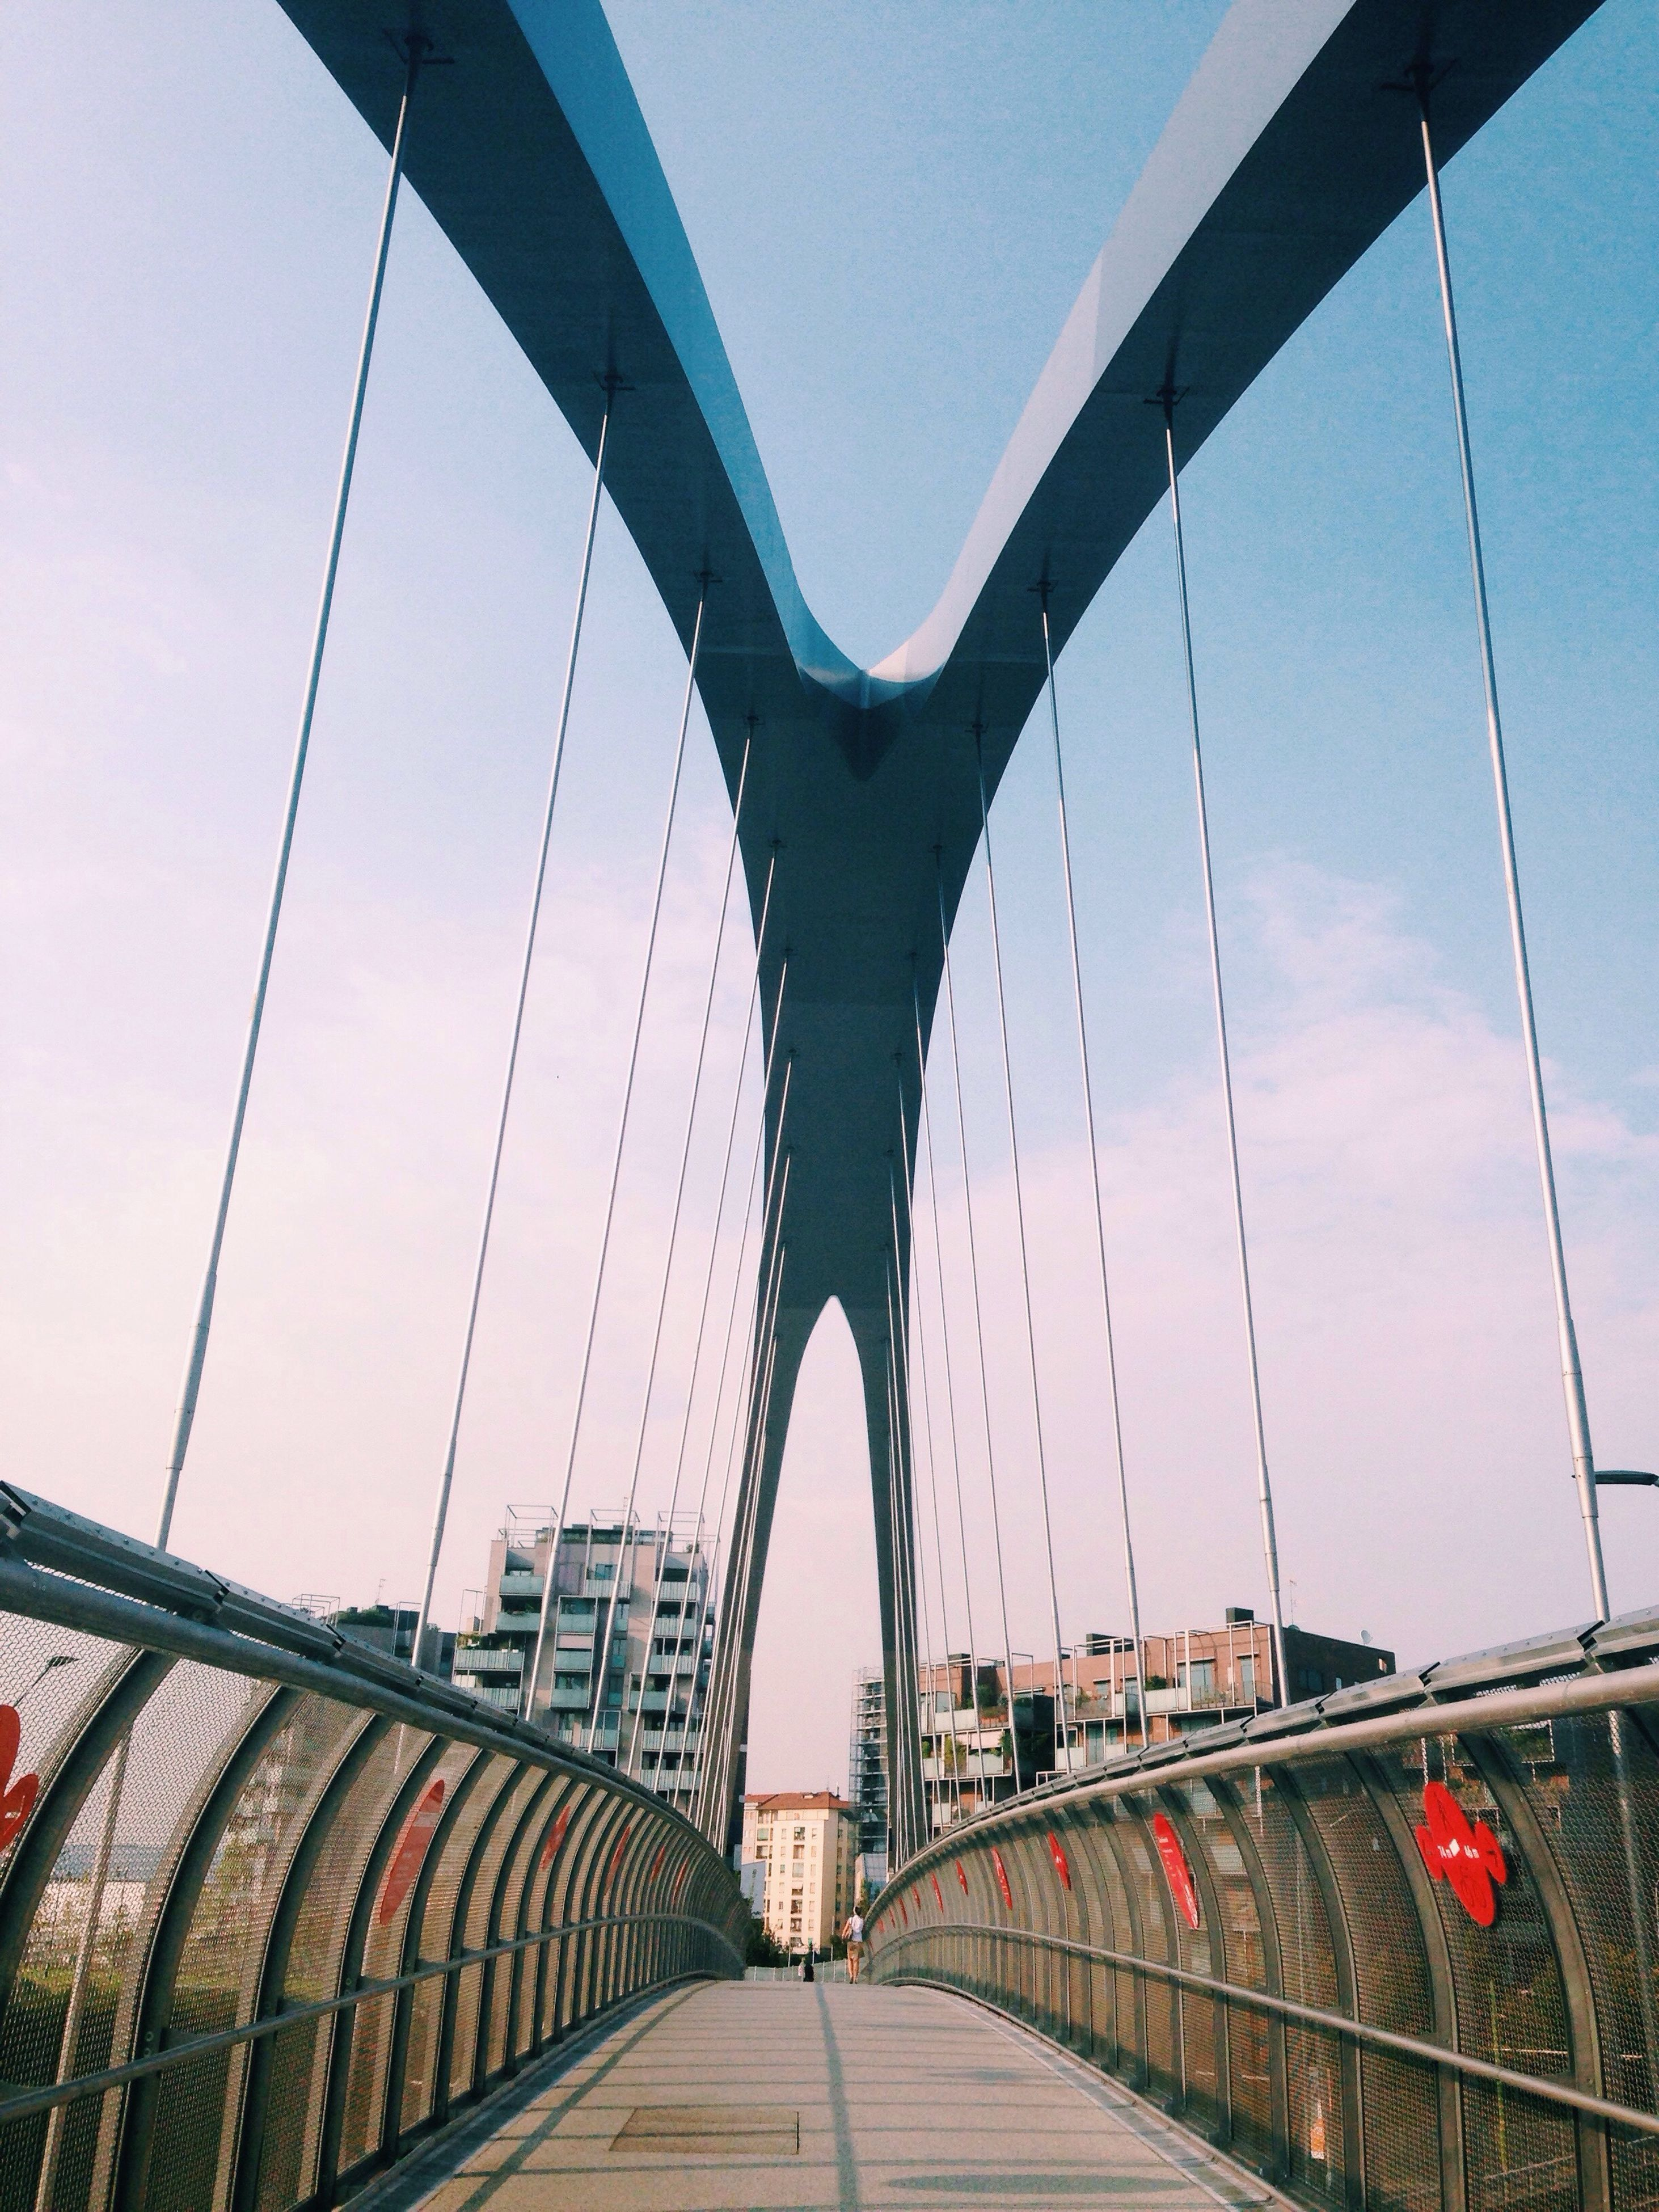 architecture, built structure, transportation, bridge - man made structure, engineering, connection, suspension bridge, bridge, the way forward, clear sky, cable-stayed bridge, steel cable, sky, day, railing, water, river, outdoors, arch, long, city life, supported